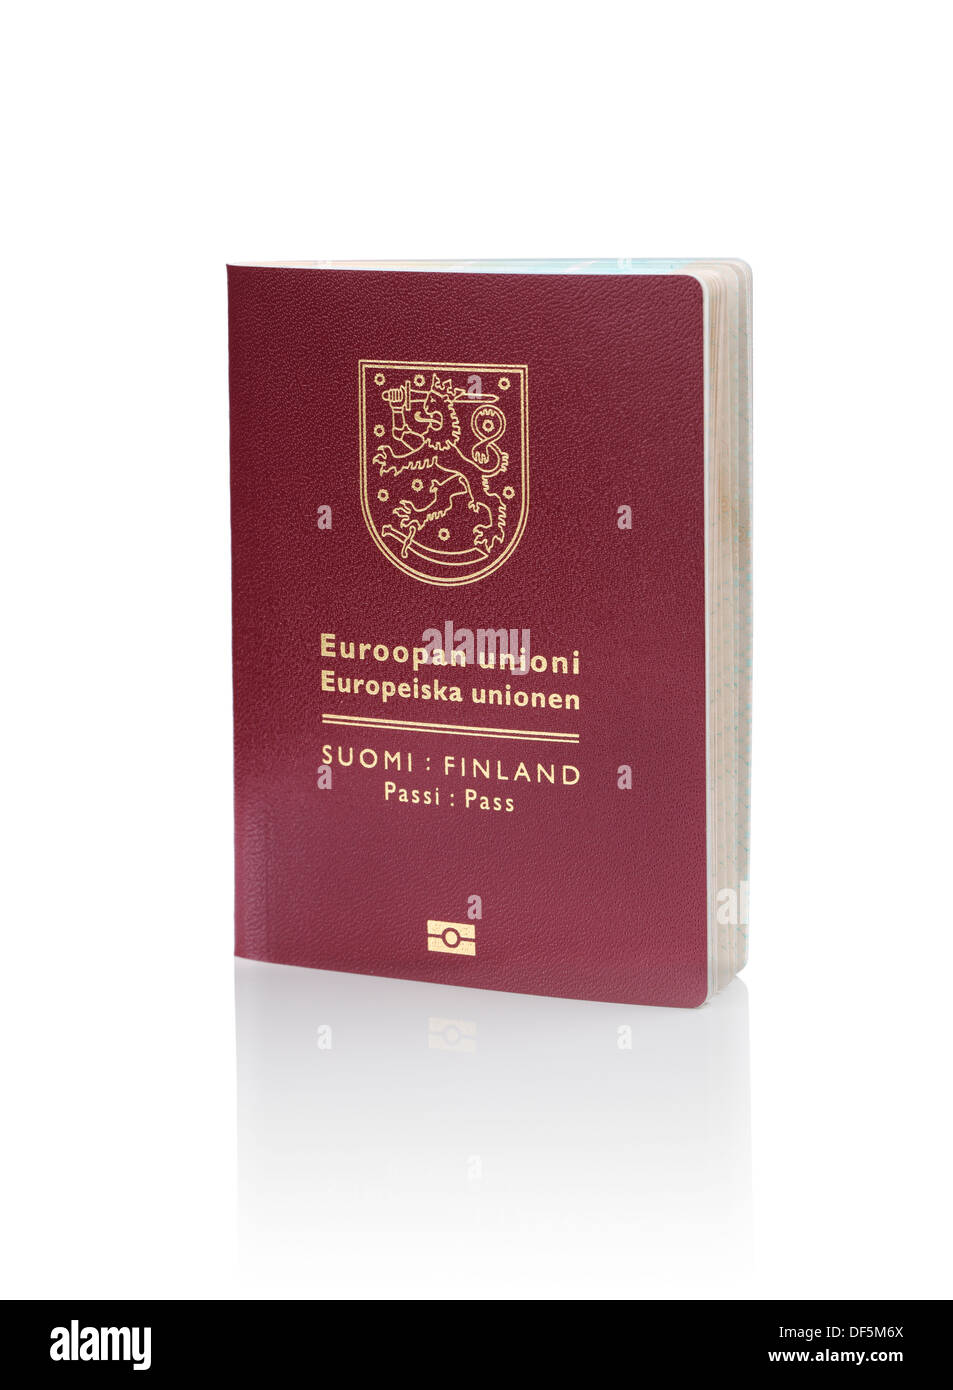 Finnish (Finland) passport isolated on white with reflection. This is the new (2013) design of the passport. - Stock Image